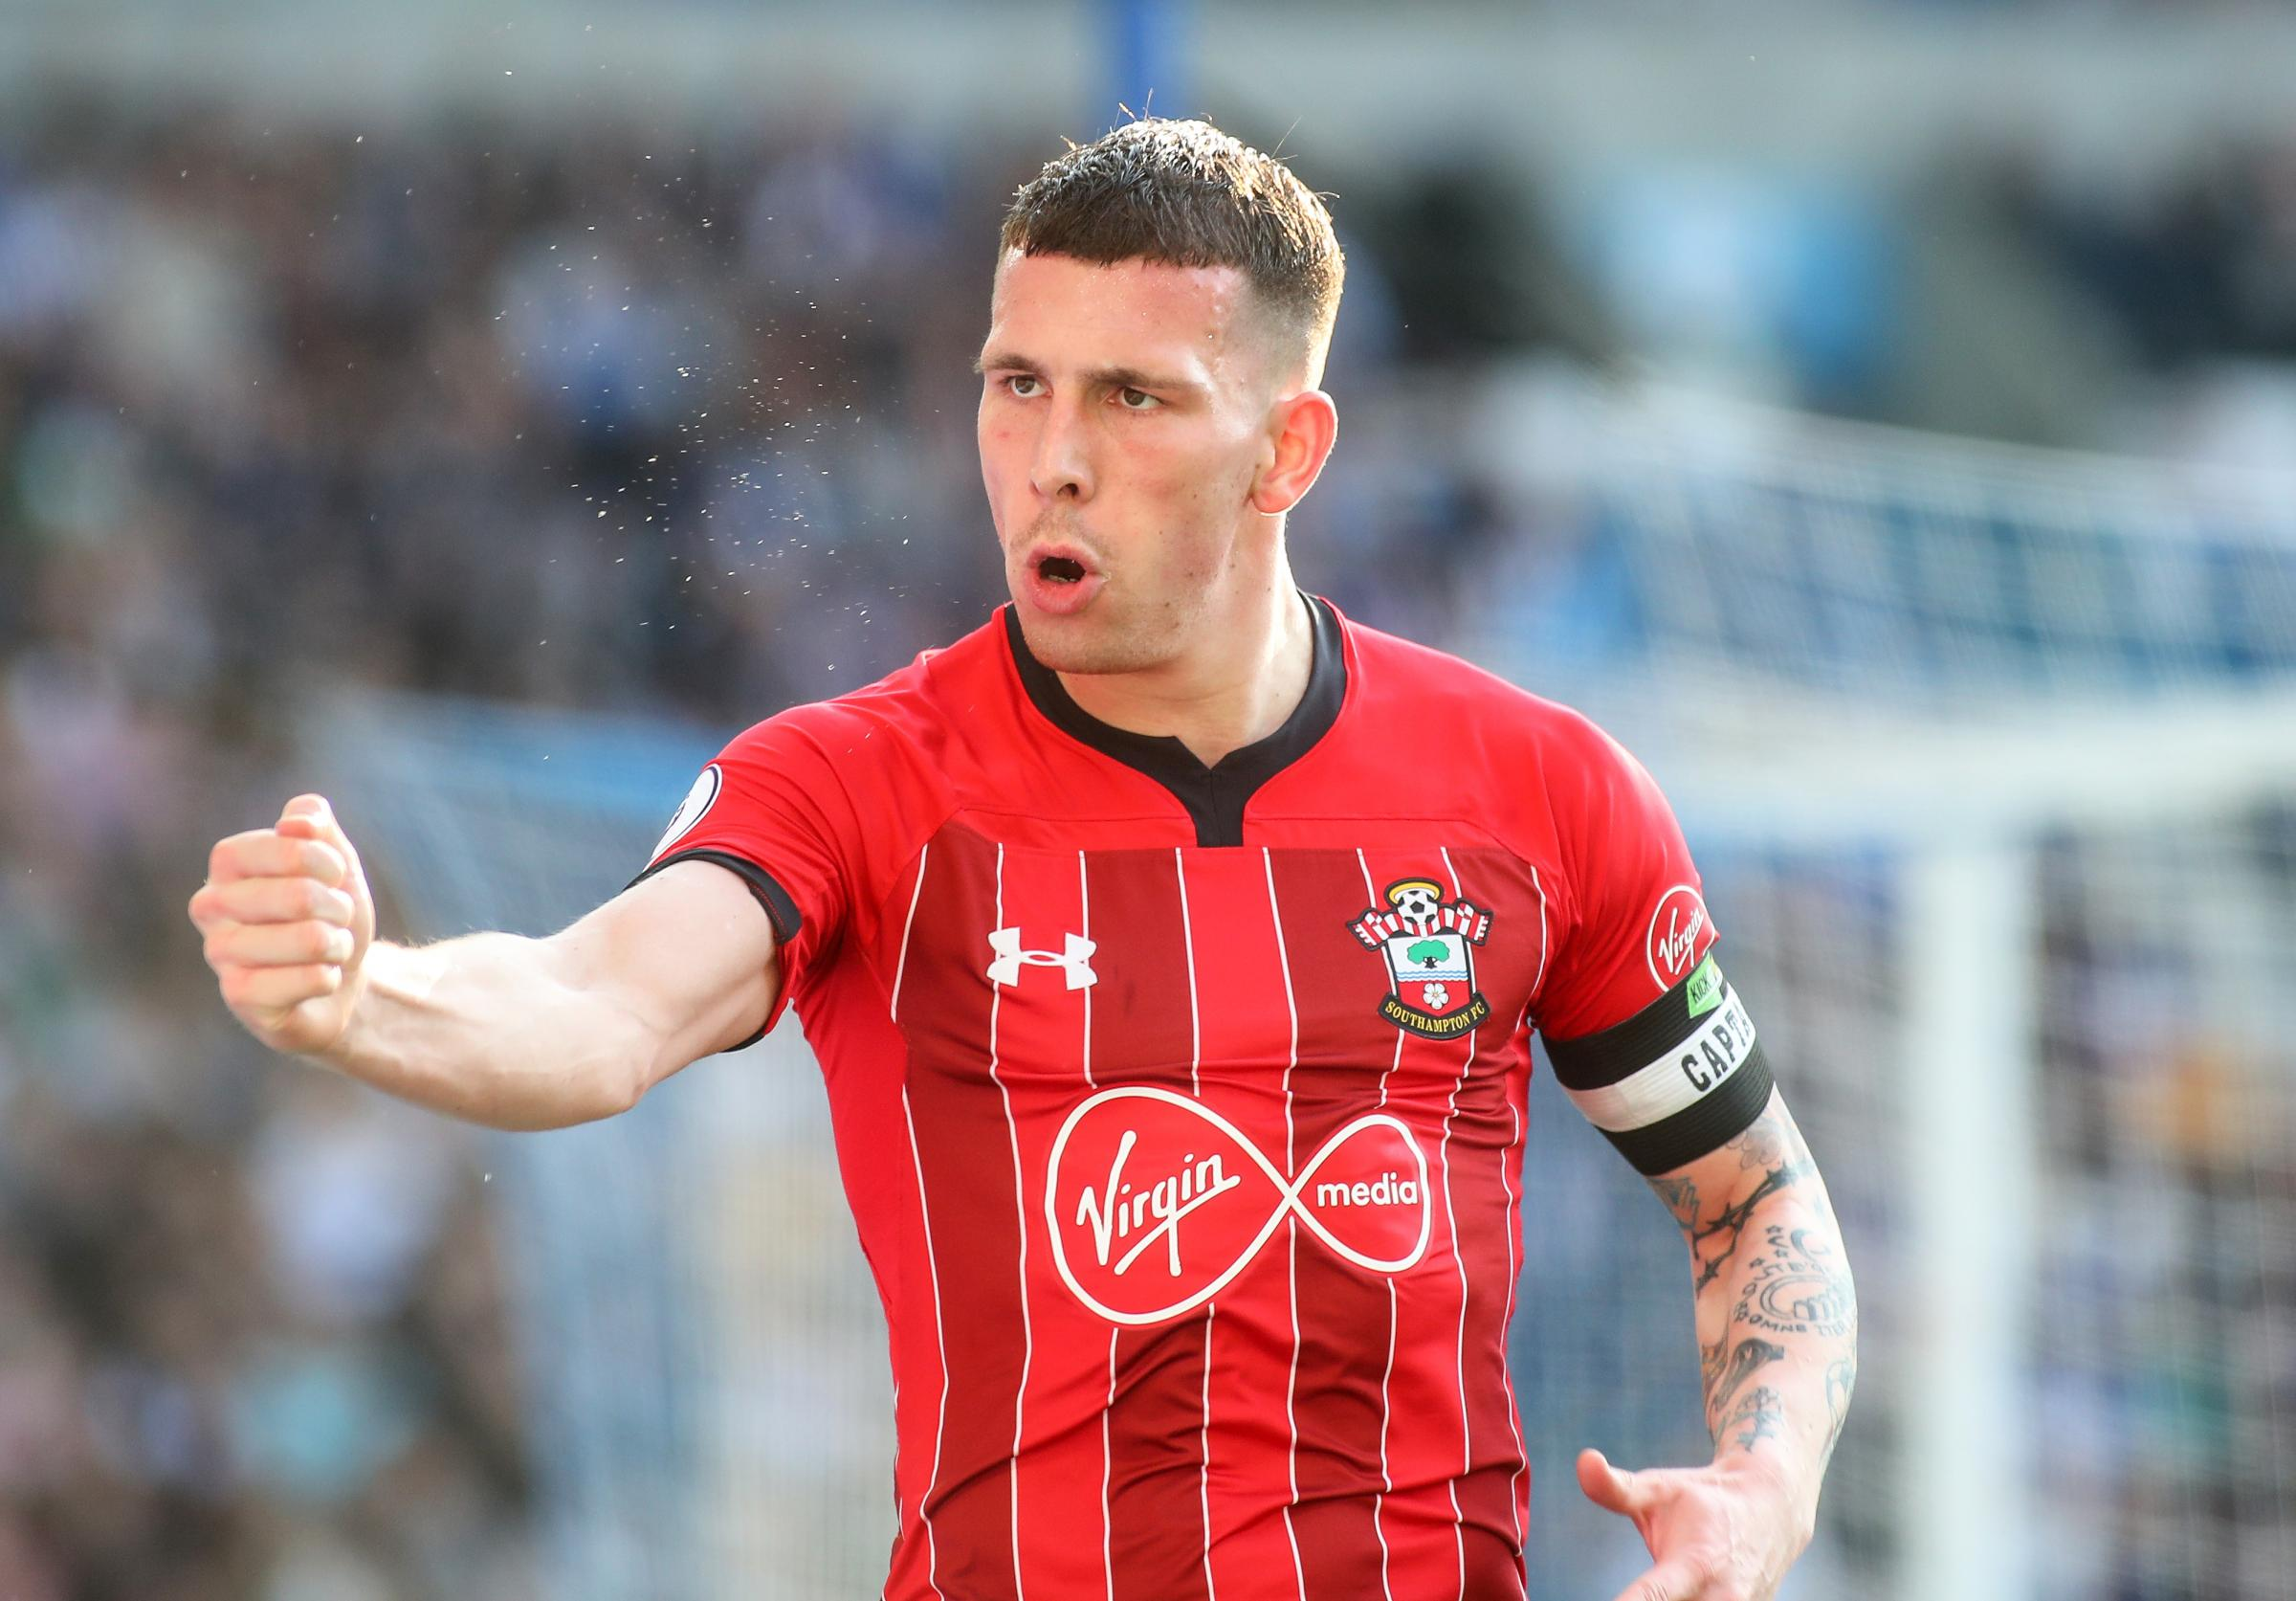 Southampton captain Pierre-Emile Hojbjerg ahead of the Brighton match